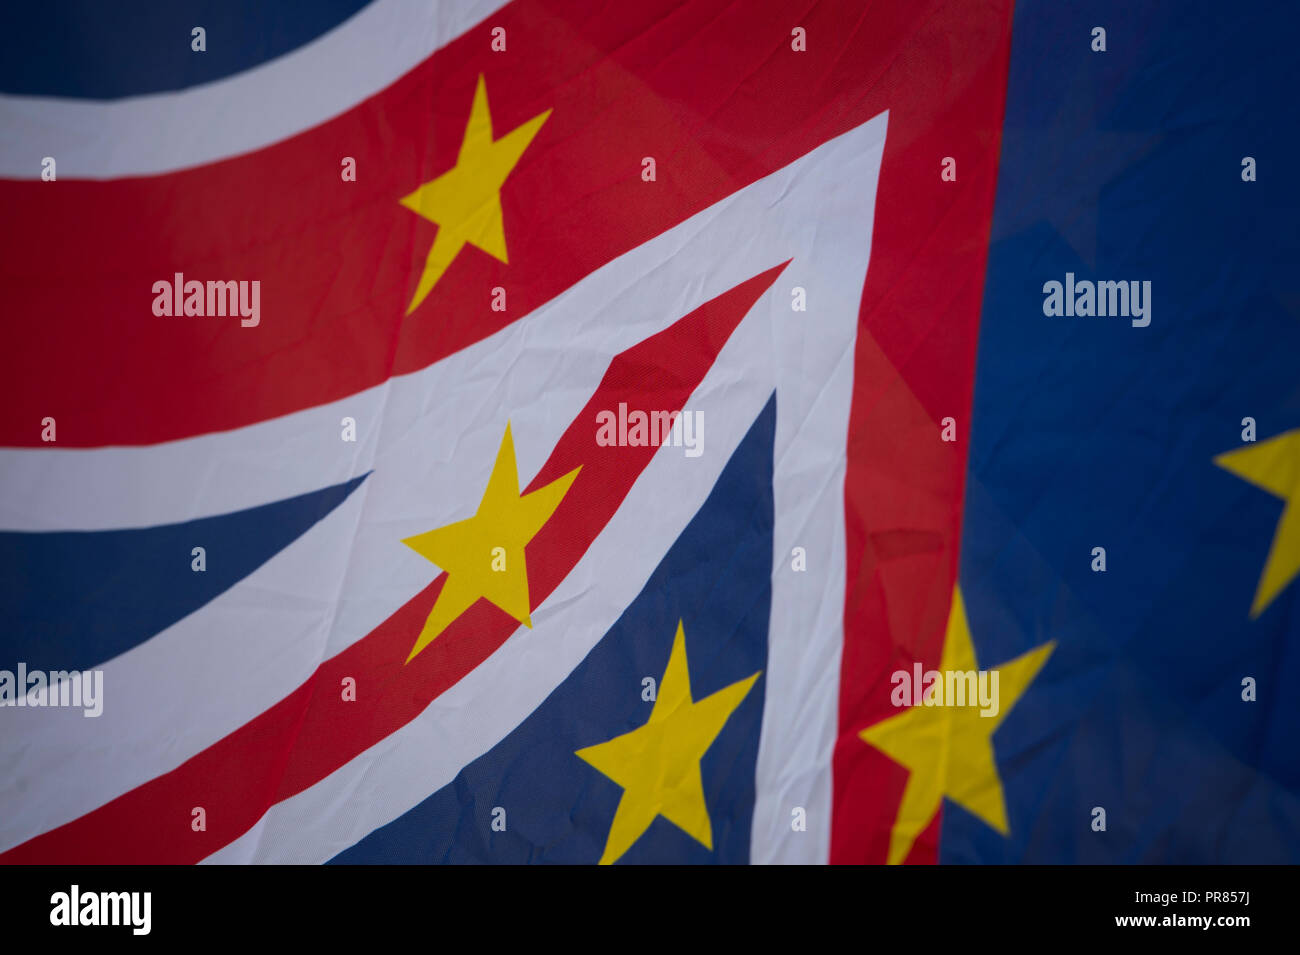 Birmingham, UK. 30th September 2018. A flag featuring elements of both the flag of the European Union and the UK's Union Flag, is flown at an anti-Brexit rally in Birmingham's Victoria Square near to the Conservative Party Conference in Birmingham. © Russell Hart/Alamy Live News. - Stock Image